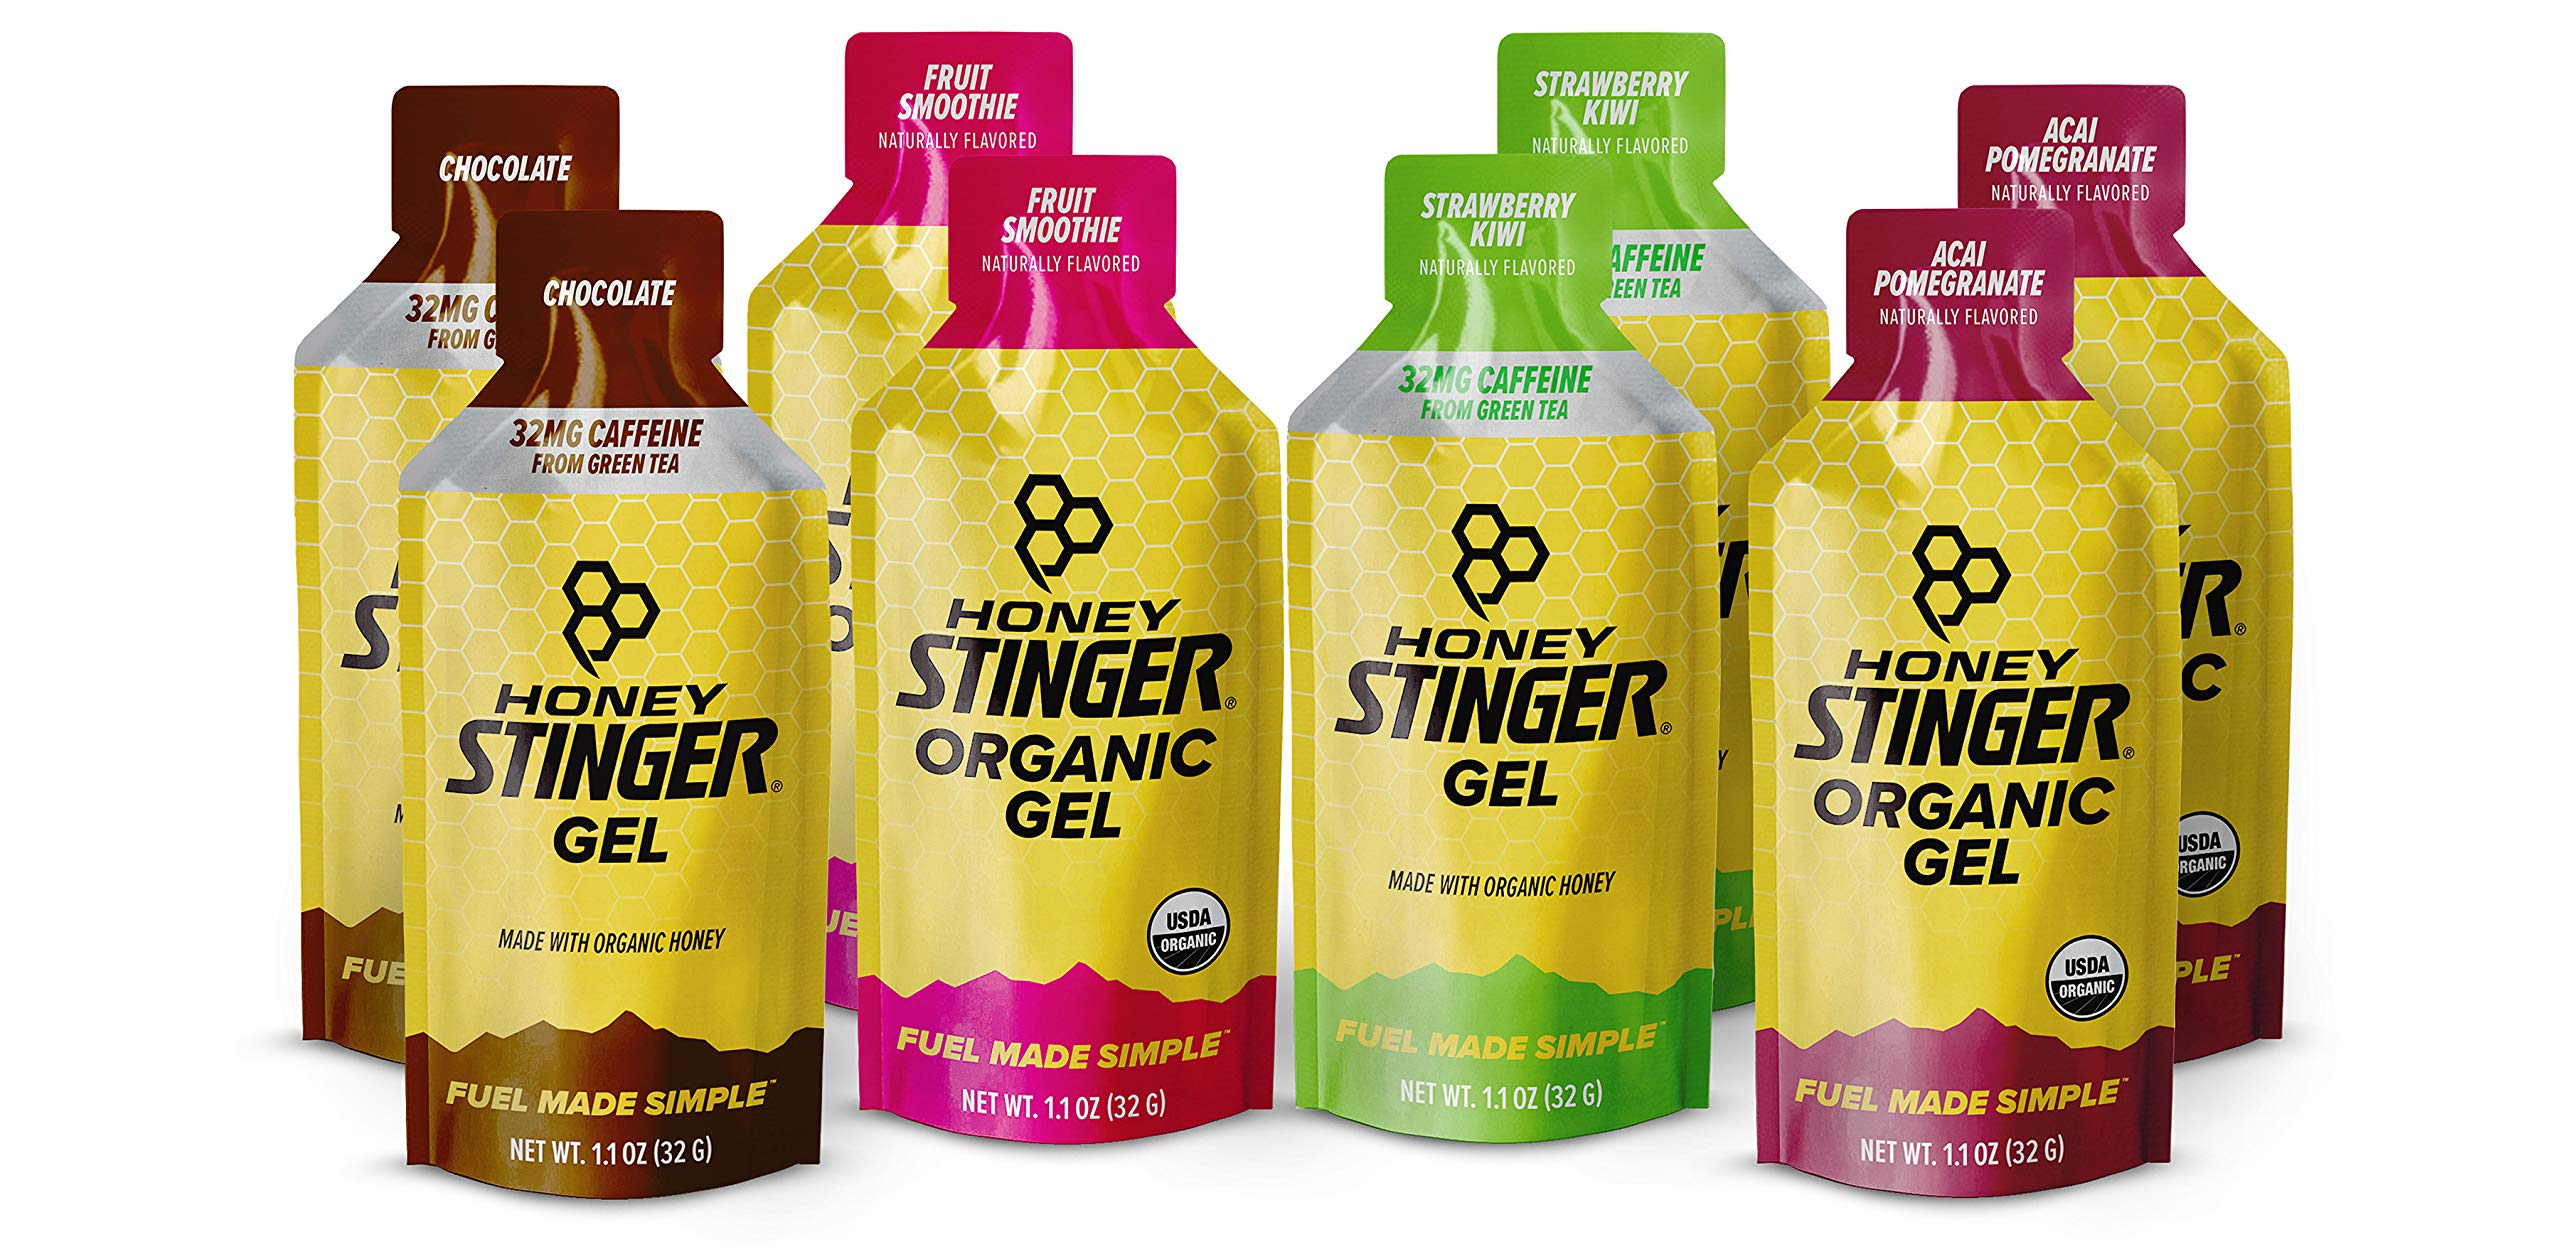 Honey Stinger Organic Energy Gels – Variety Pack with Sticker – 8 Count – 2 of Each Flavor – Energy Source for Any Activity – Acai & Pomegranate, Strawberry Kiwi, Chocolate & Fruit Smoothie